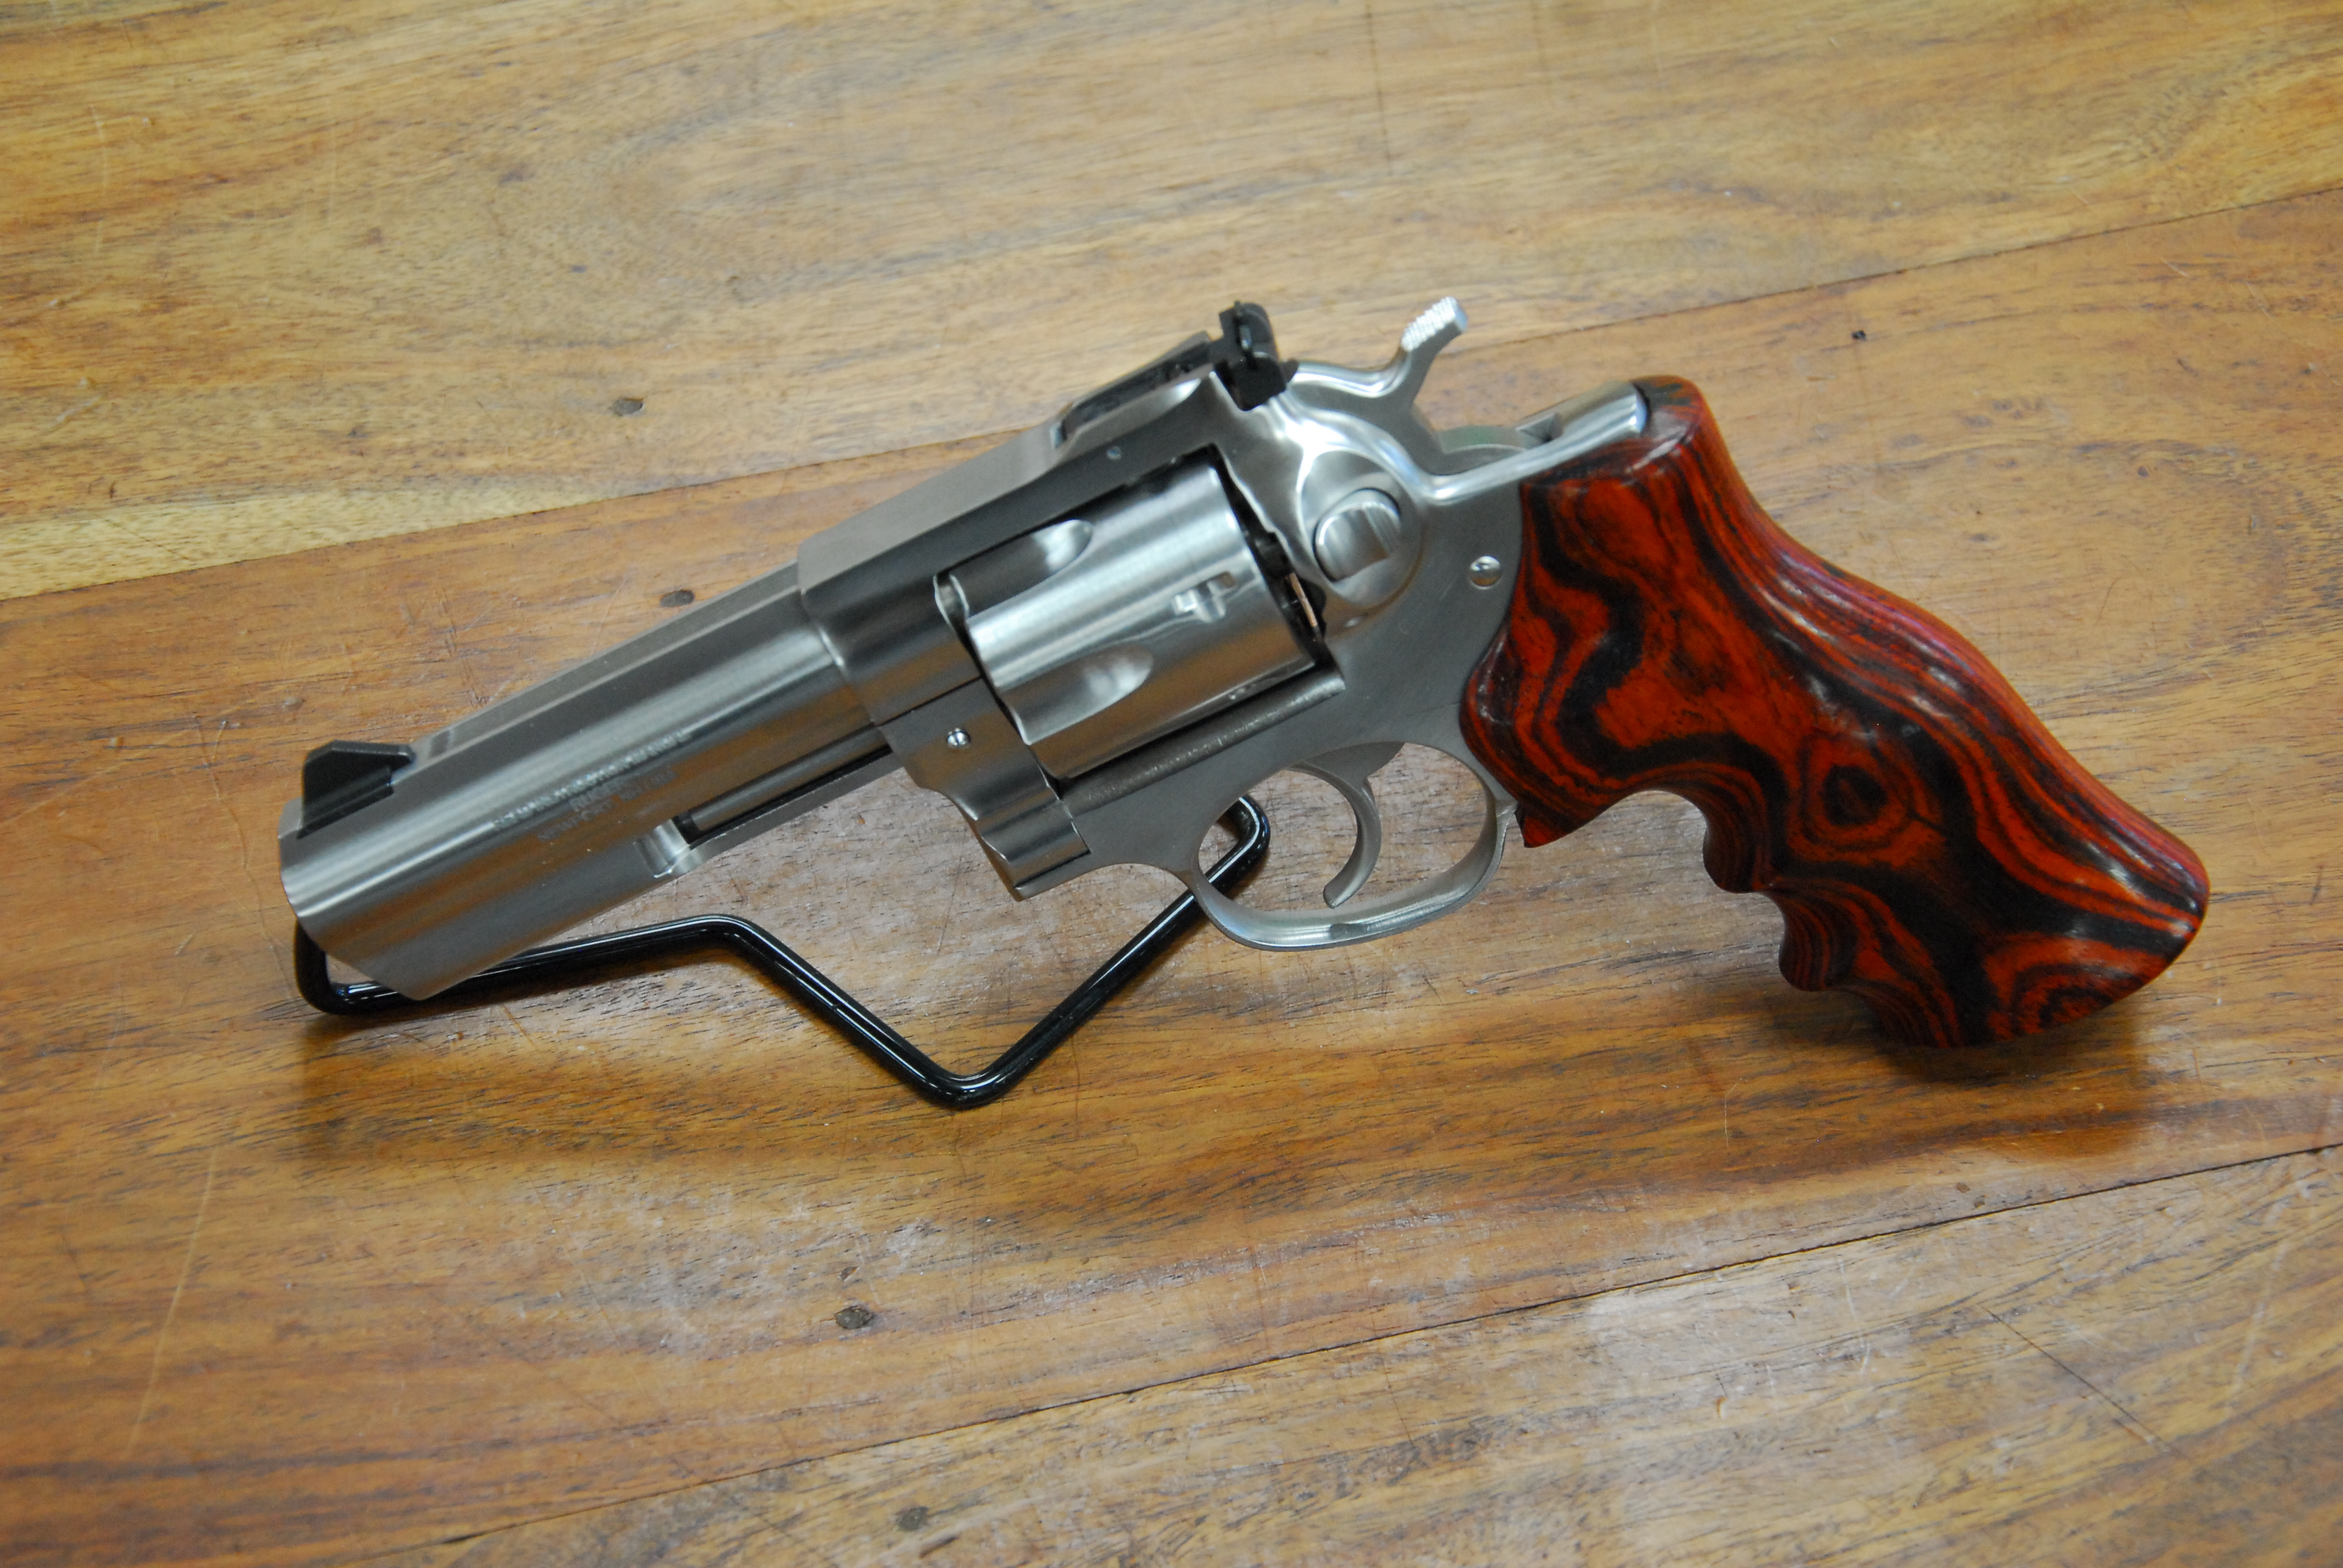 Ruger lcr 357 wood grips